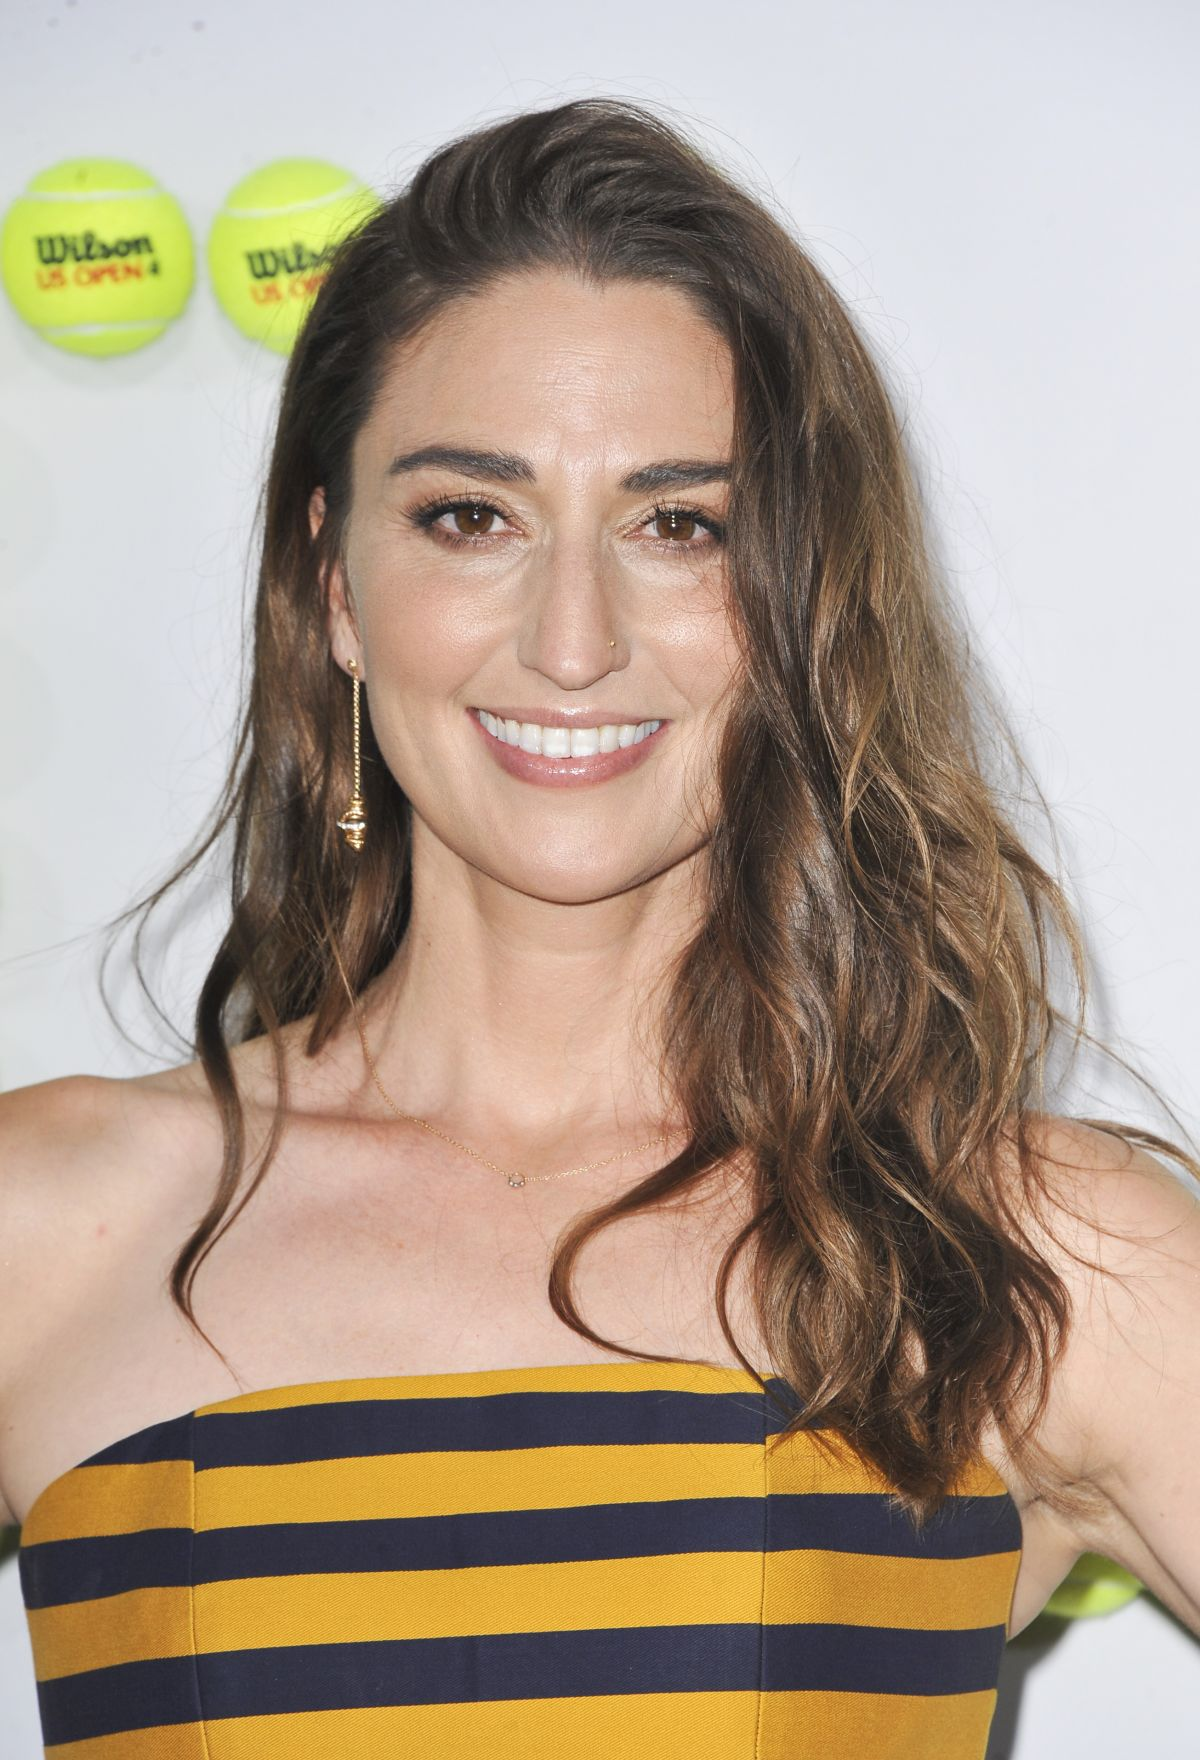 Sara Bareilles nudes (43 fotos) Boobs, Facebook, underwear